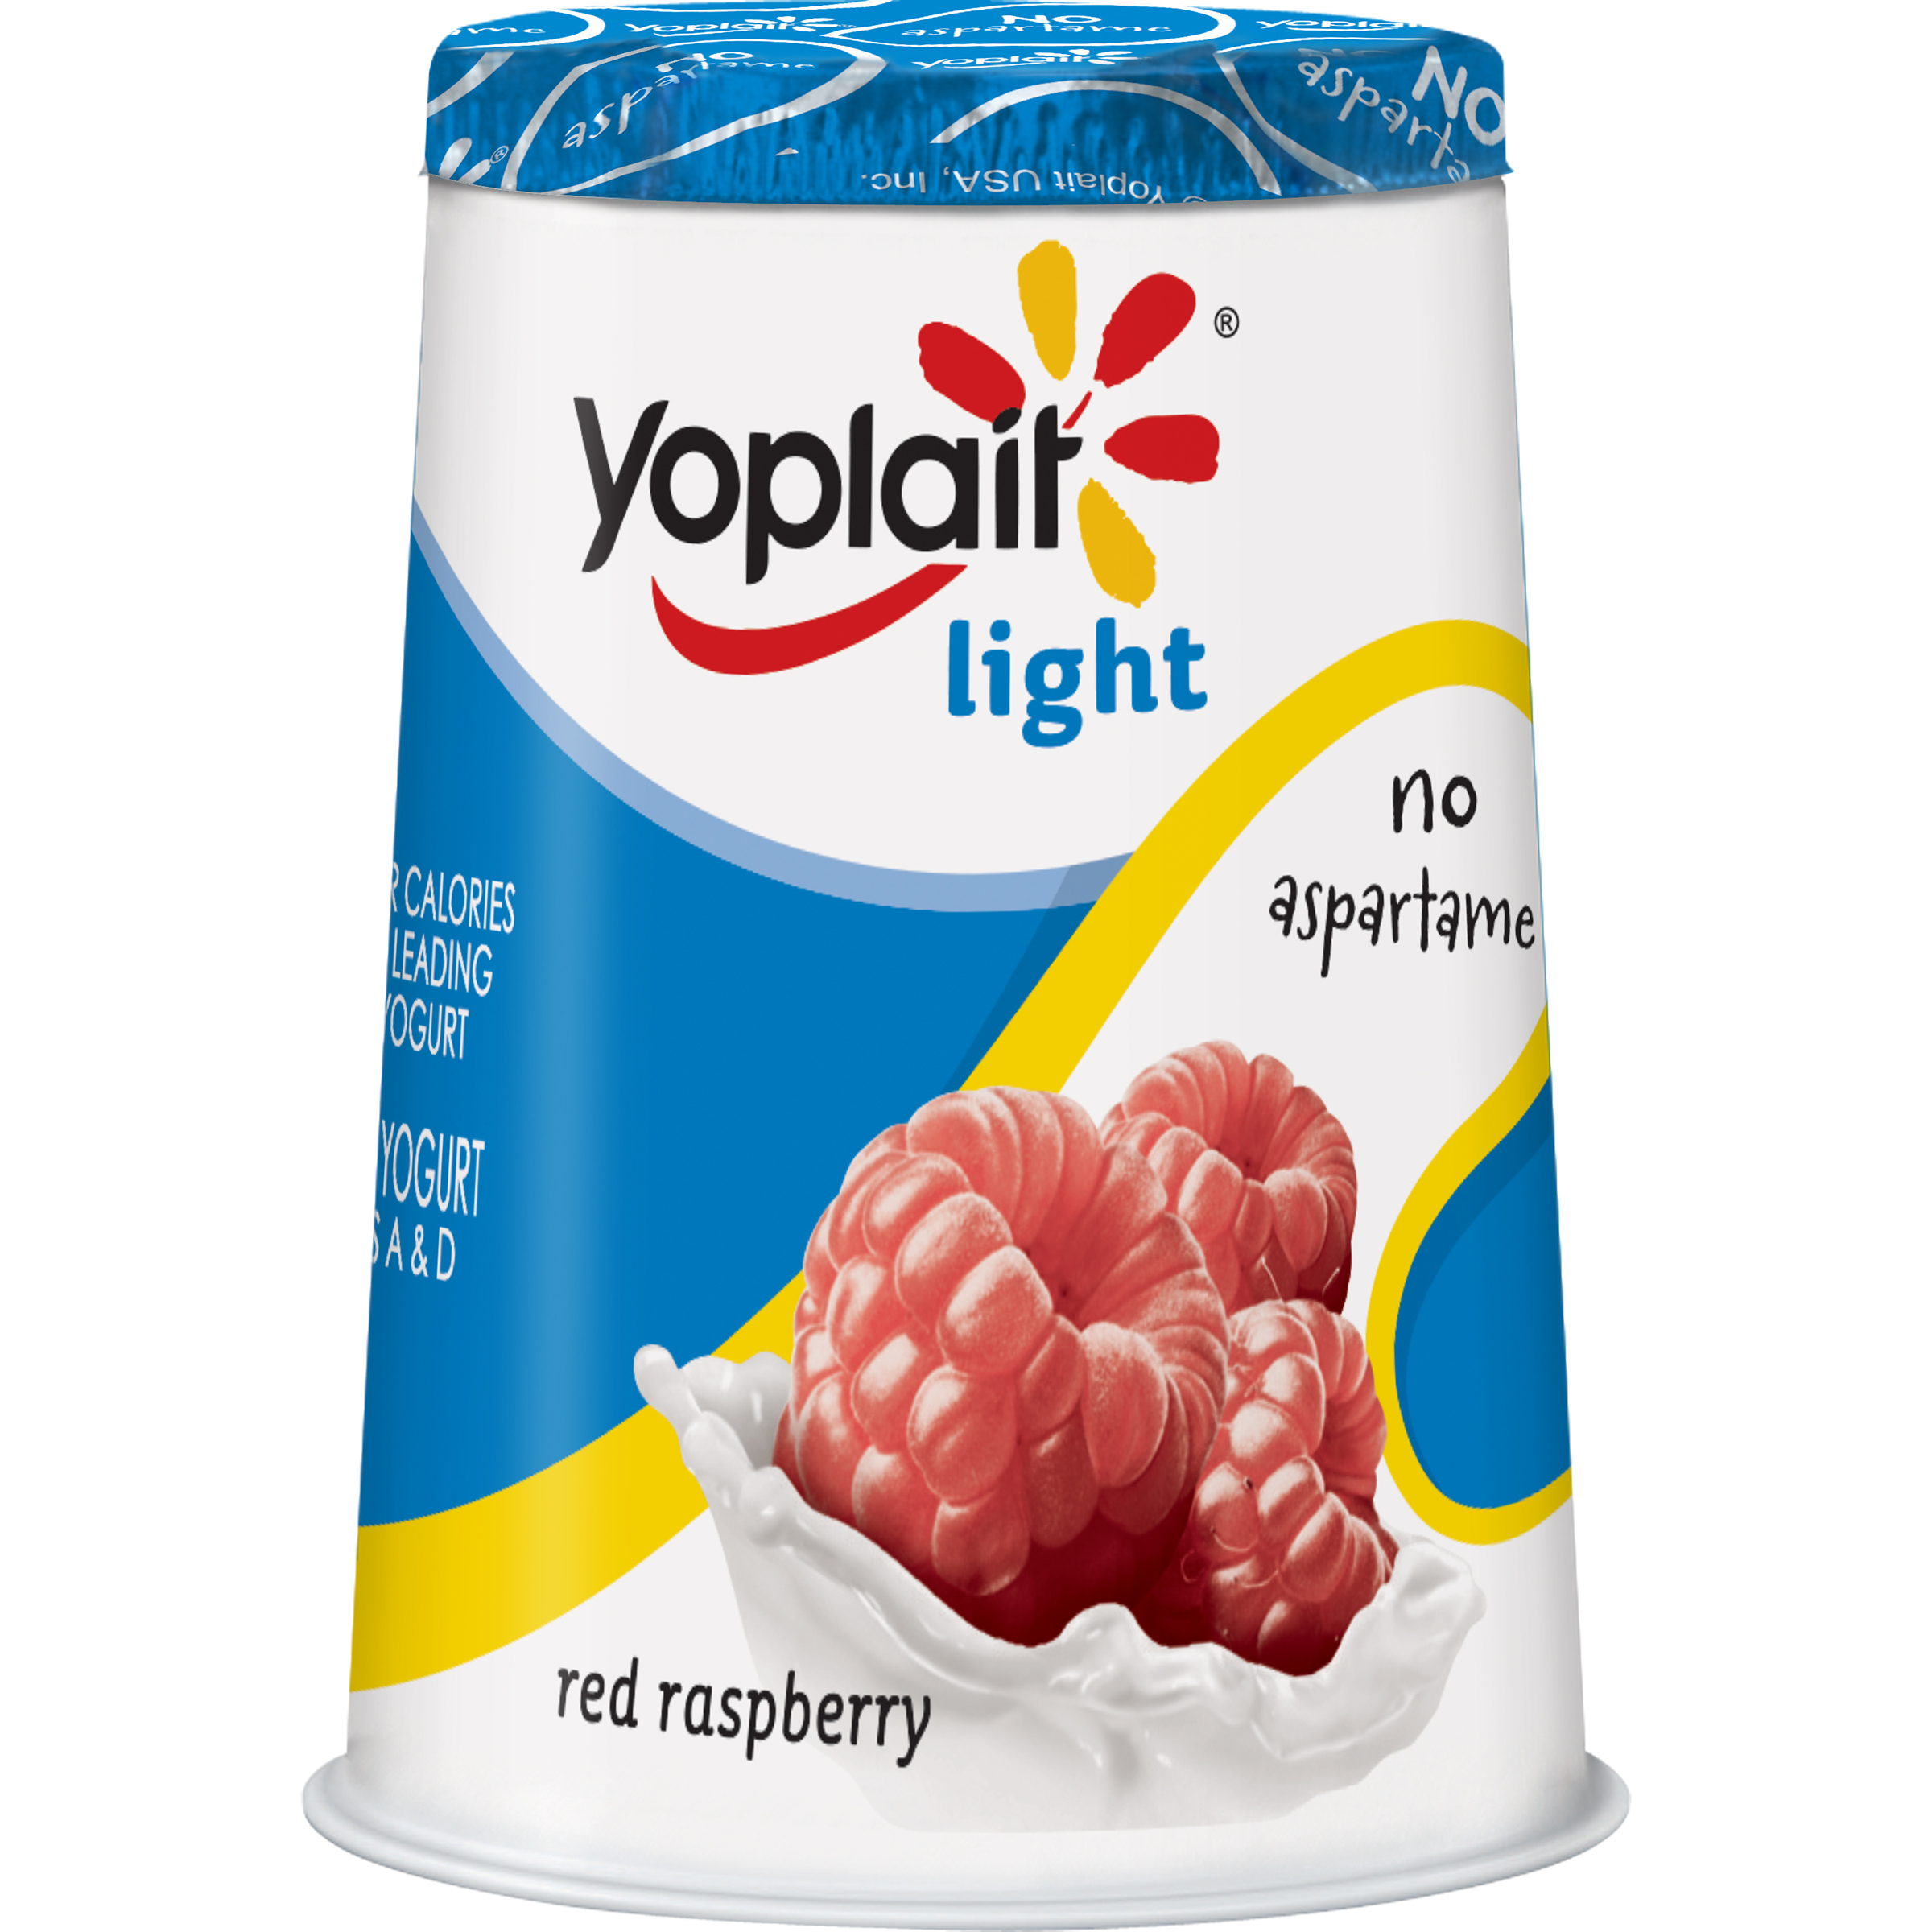 Yoplait Light Fat Free Yogurt Red Raspberry 6.0 oz Cup